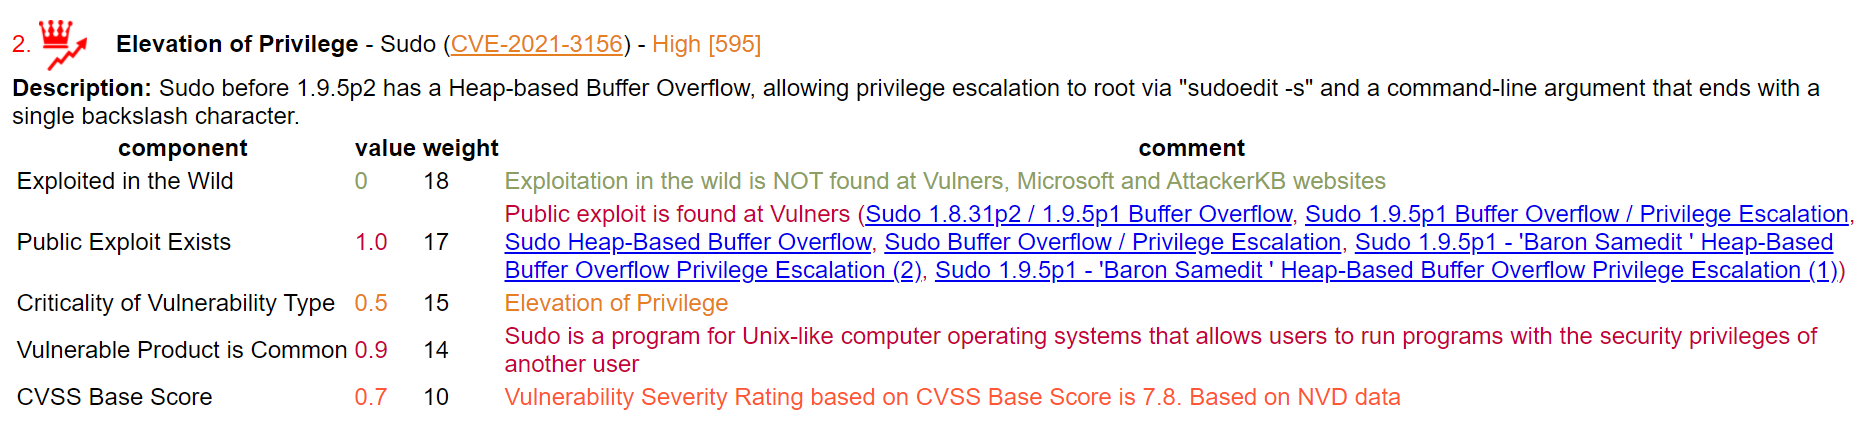 Elevation of Privilege - Sudo (CVE-2021-3156) - High [595]